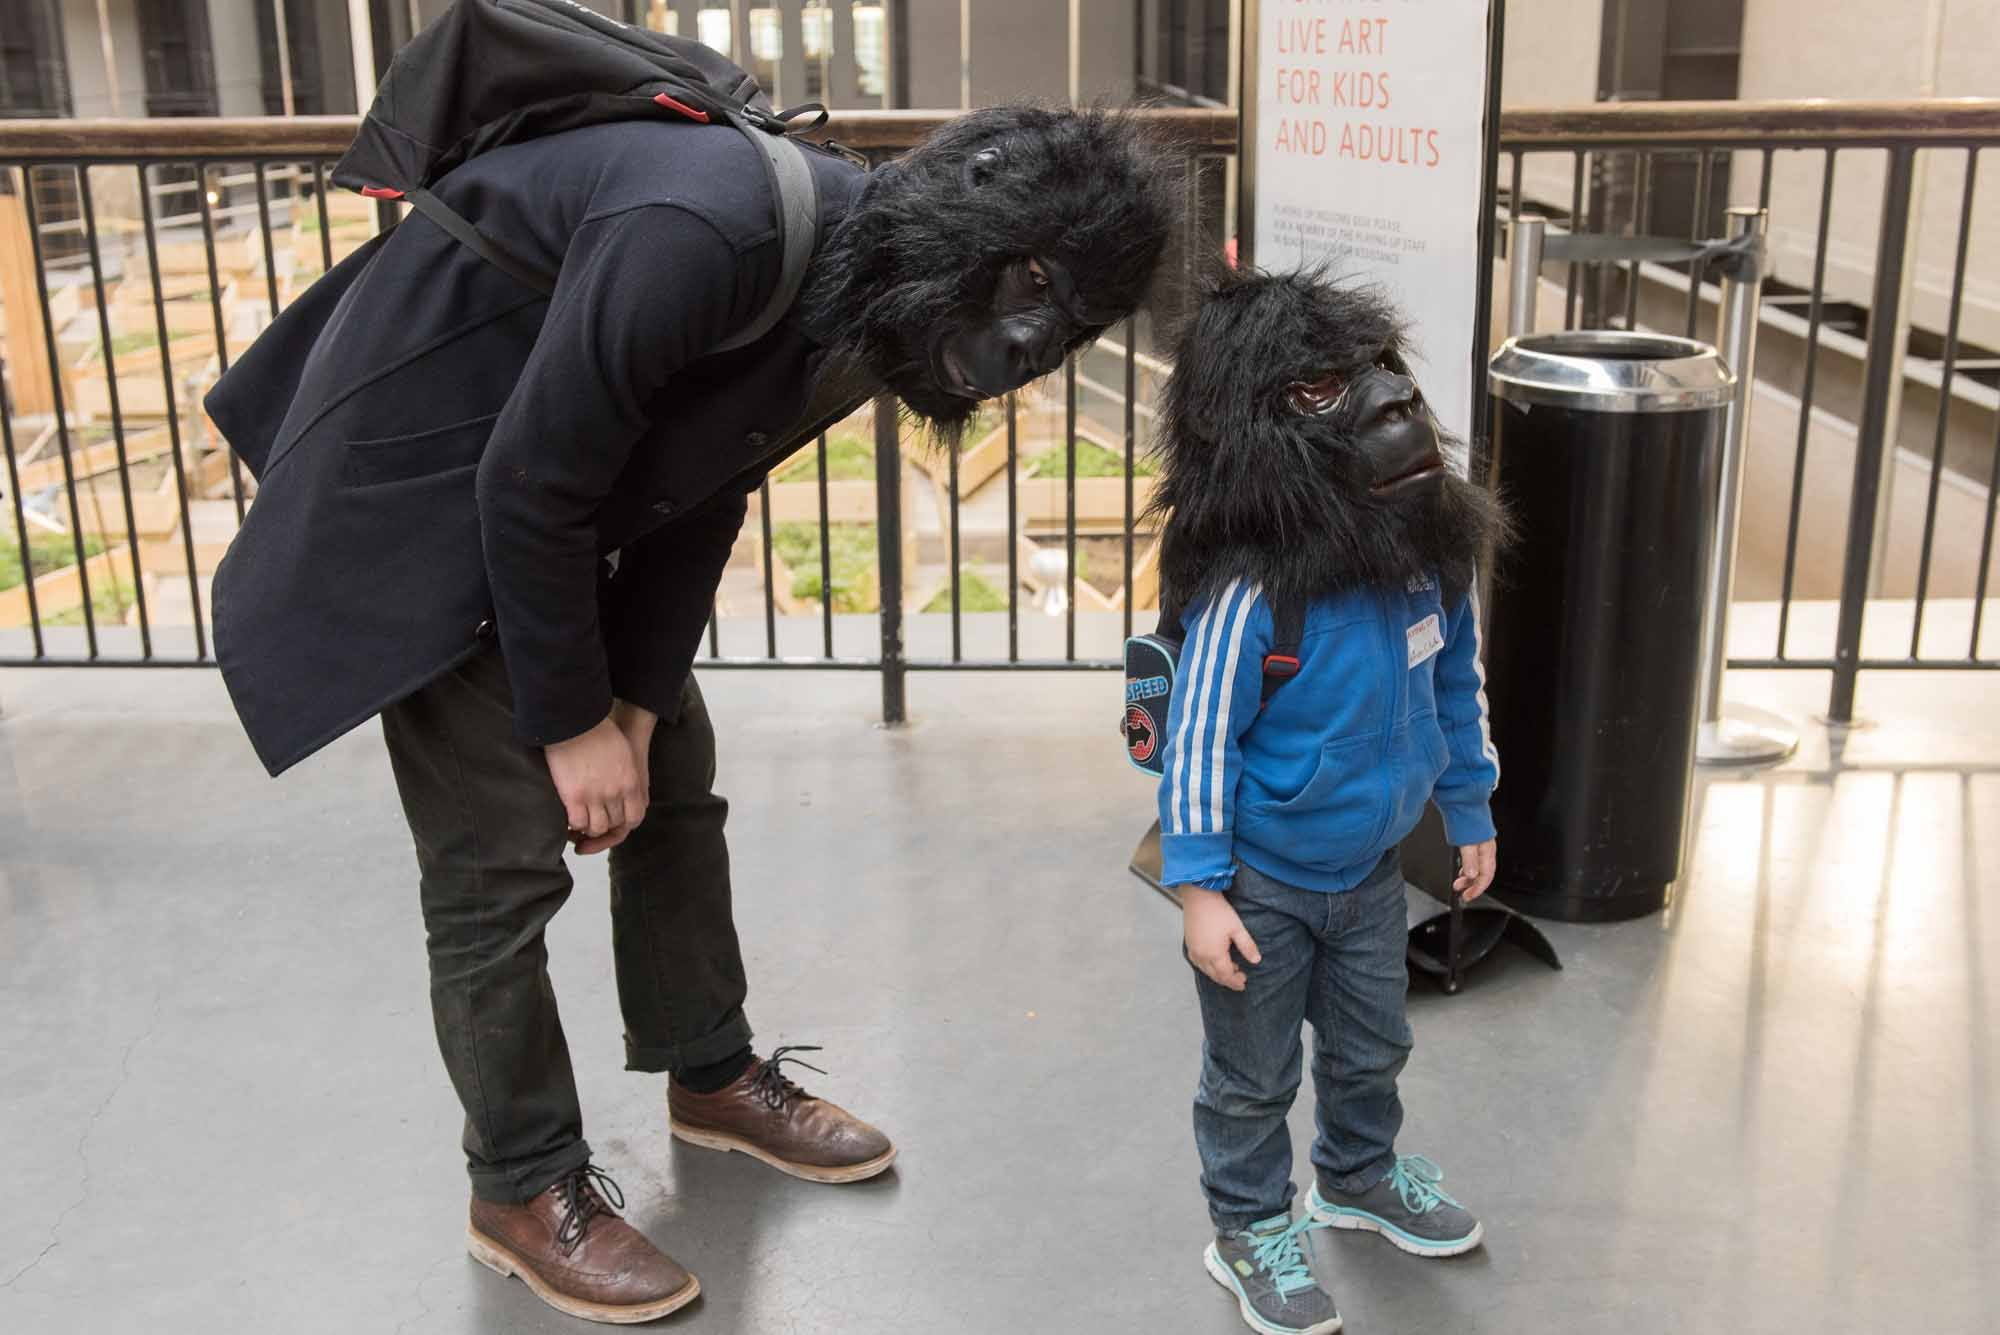 A young person and their parent wear gorilla masks in the Tate Modern Turbine Hall.